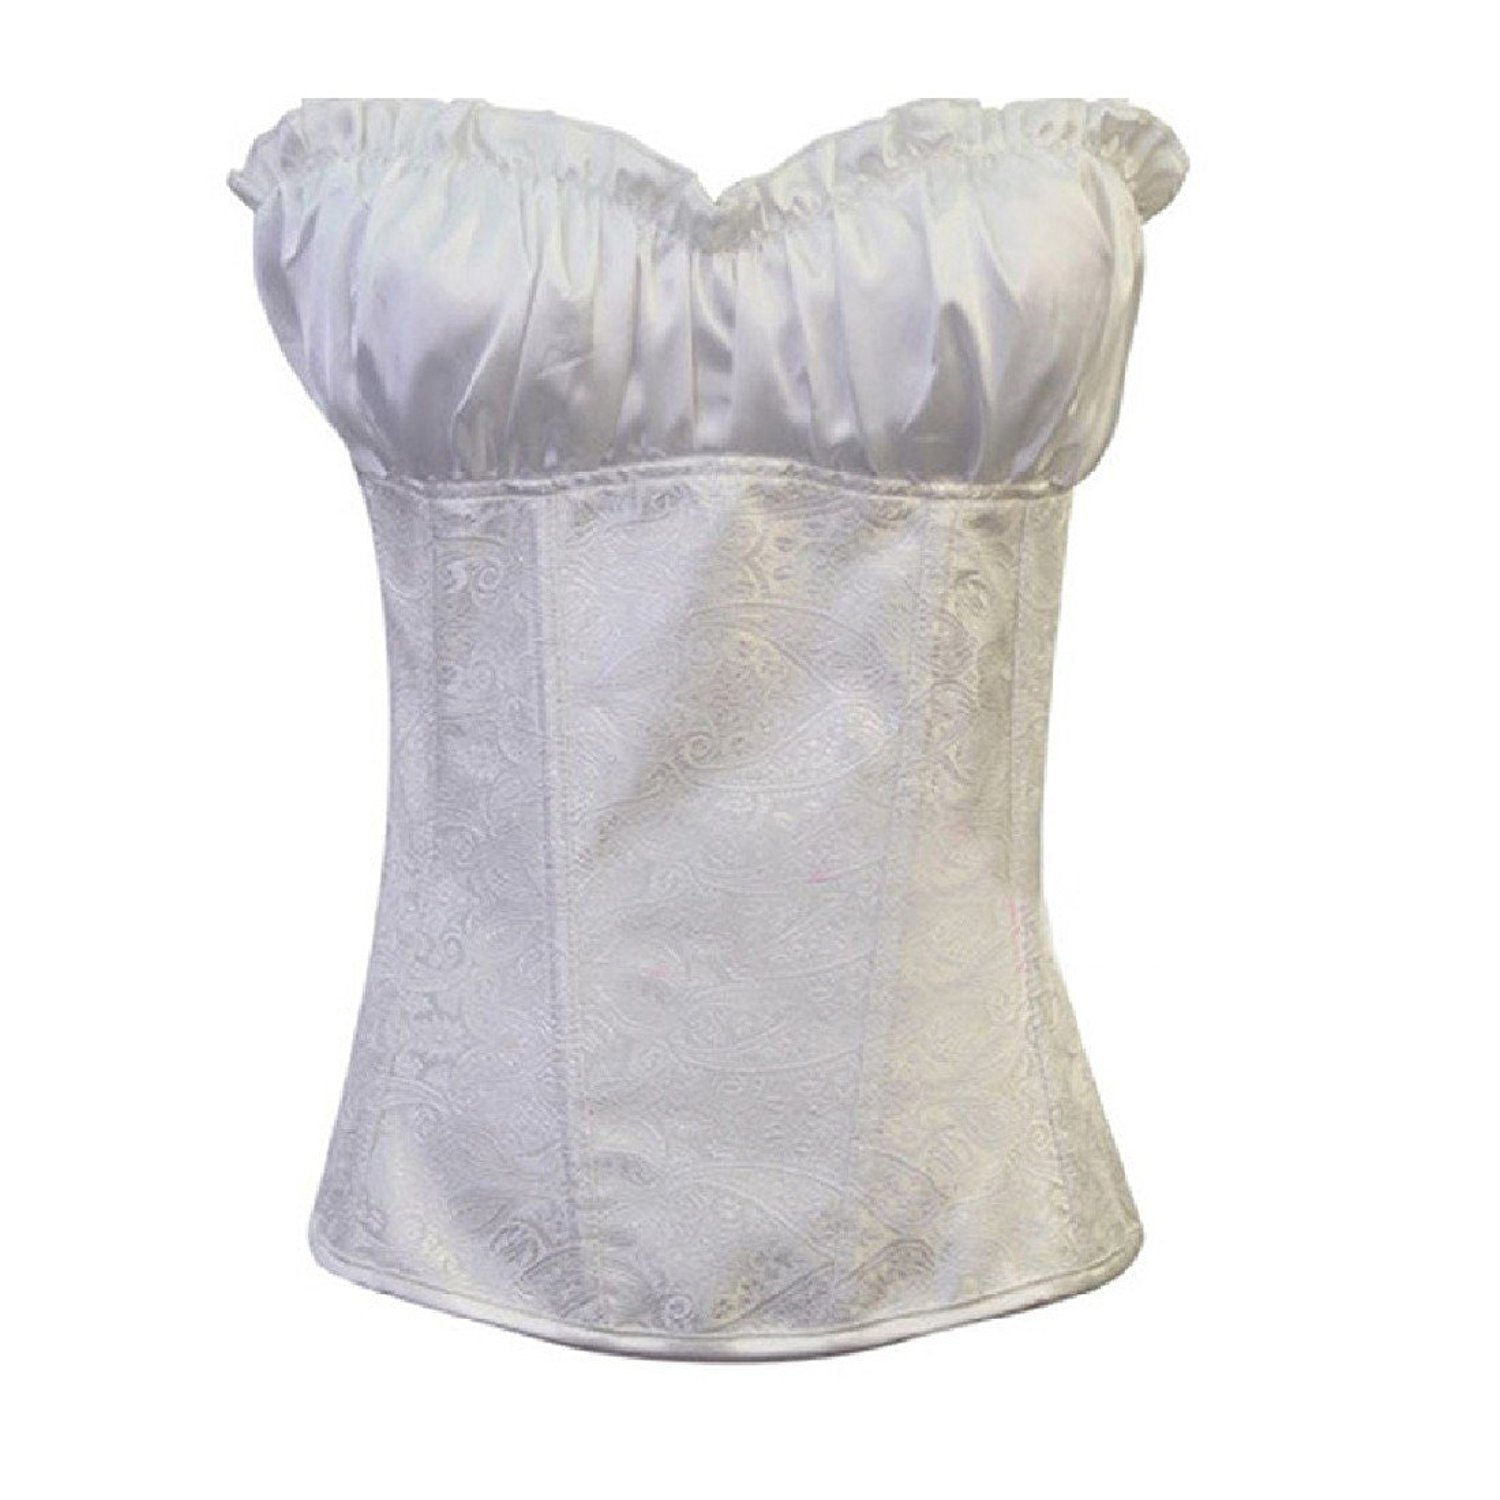 d77acce24 Get Quotations · Abetteric Womens Satin Shapewear Bridal Lace Up Corset  Bustier